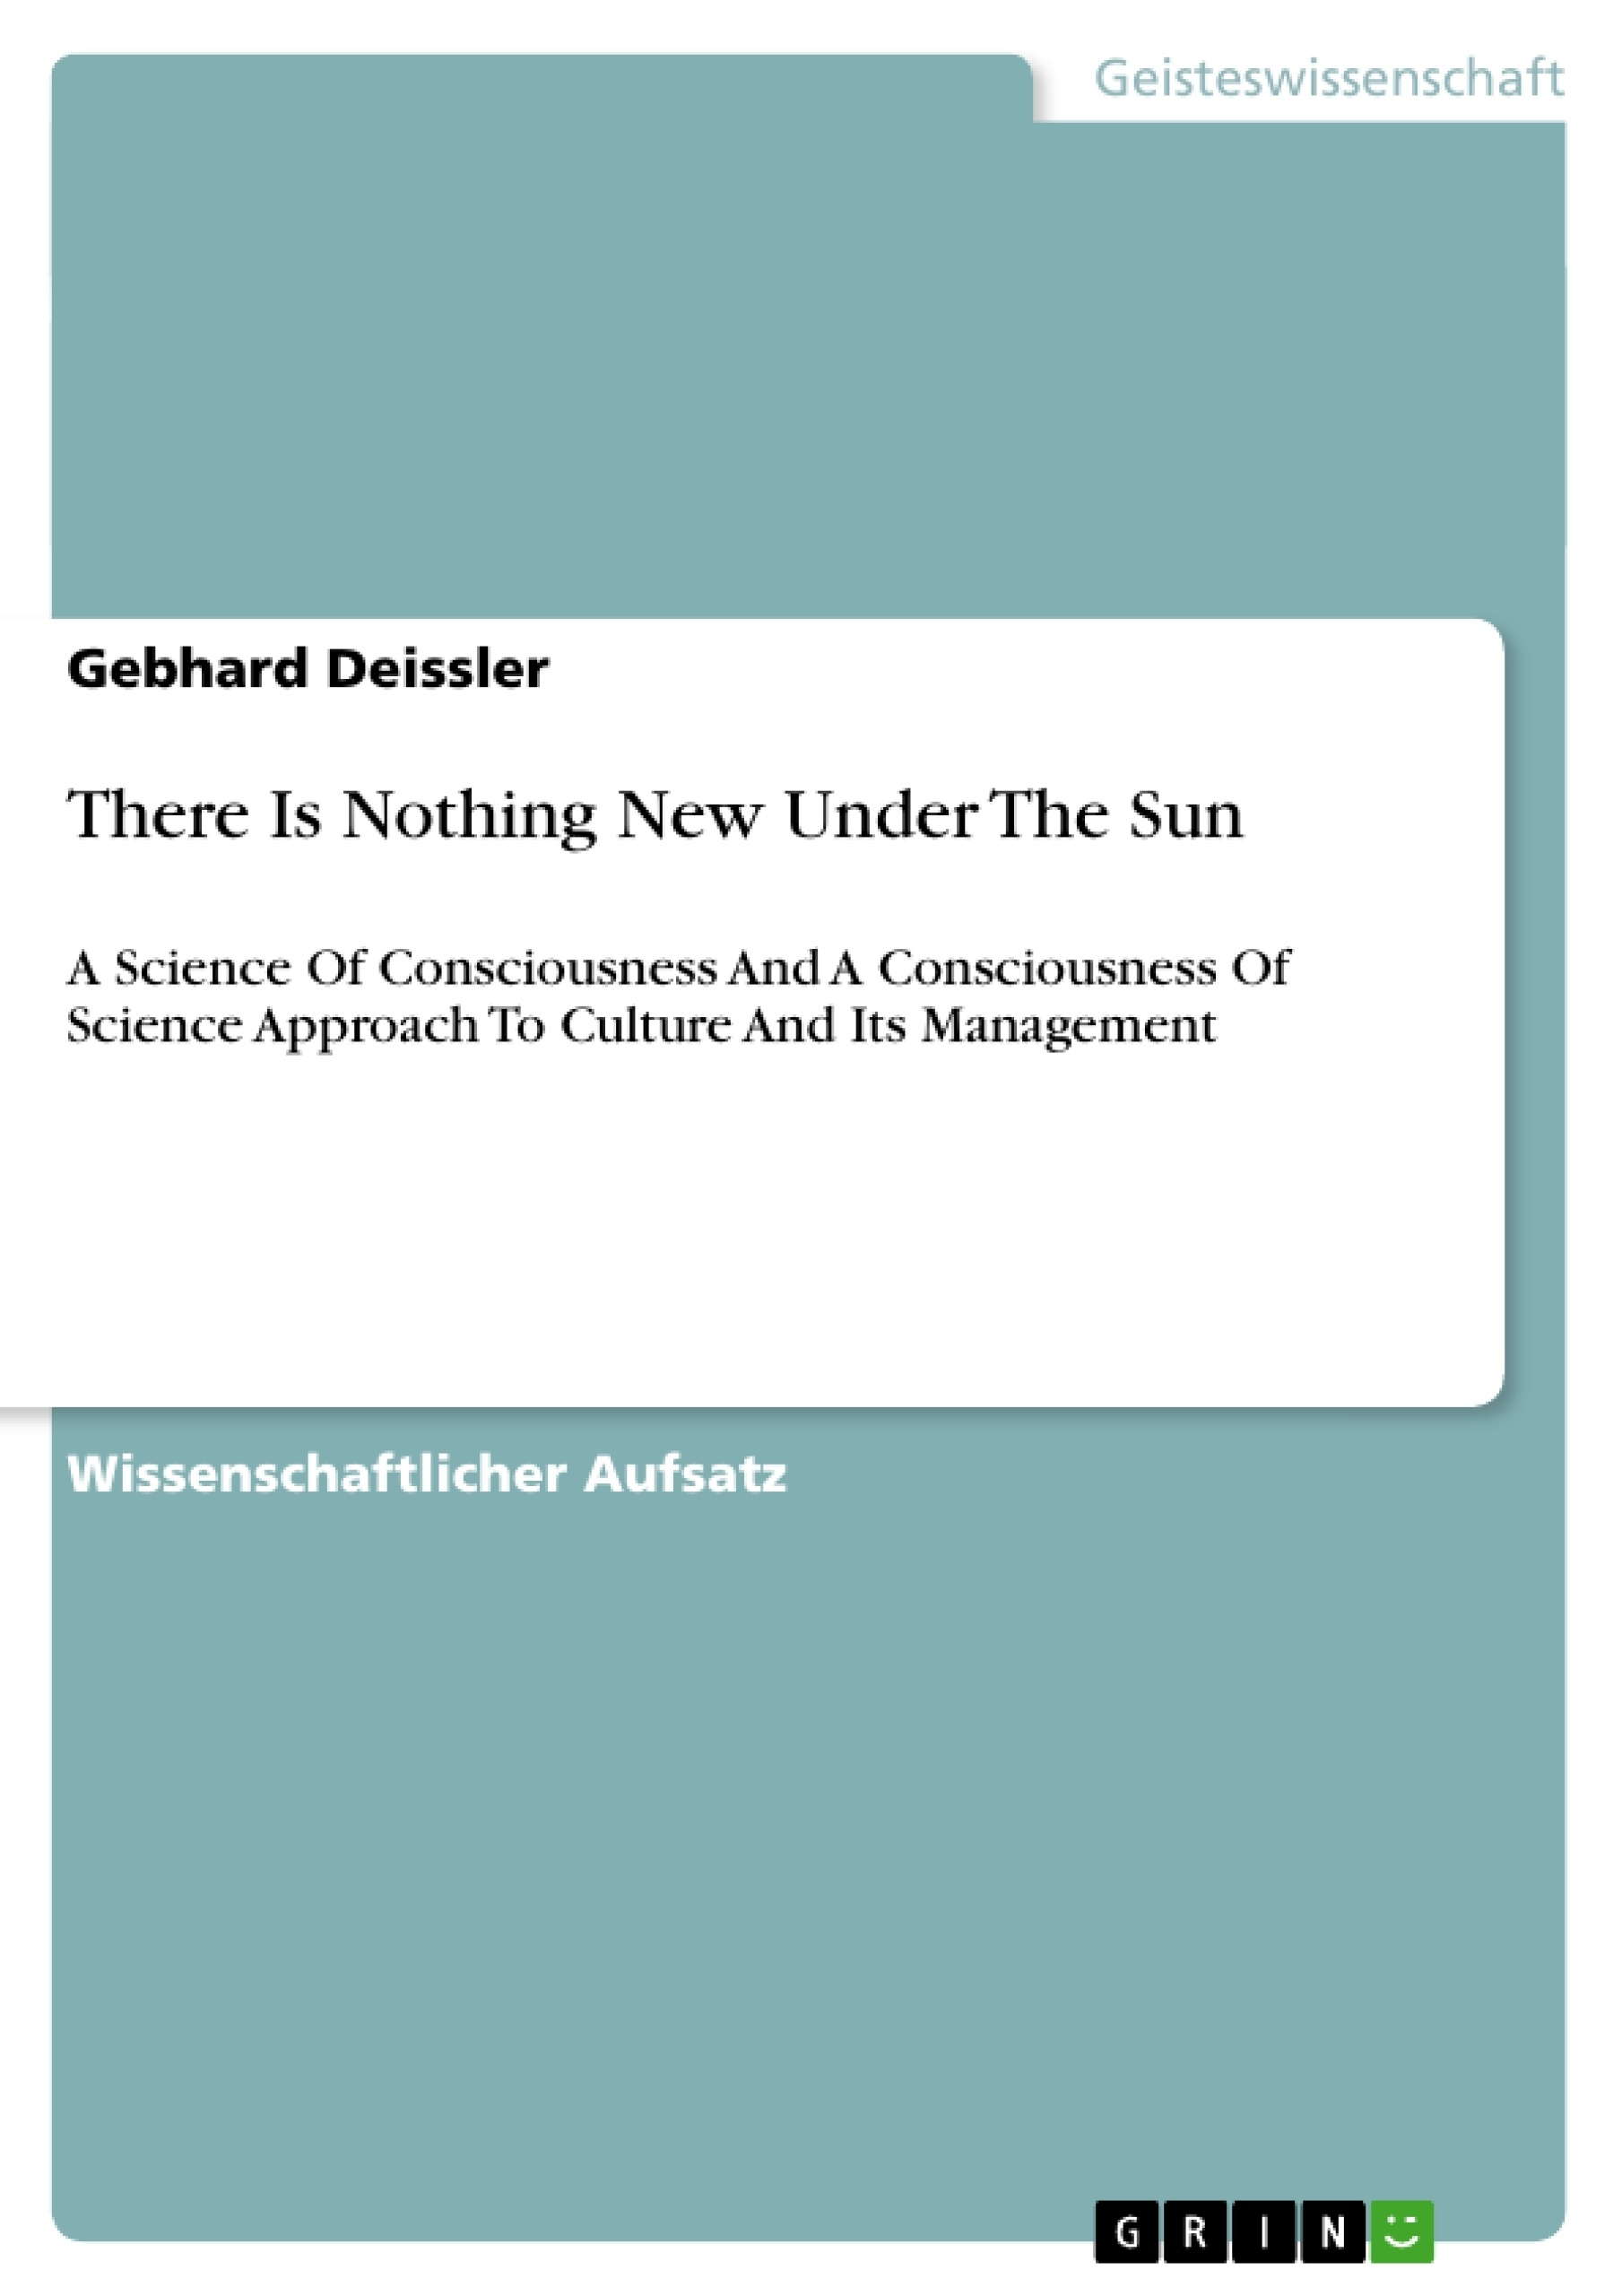 Titel: There Is Nothing New Under The Sun